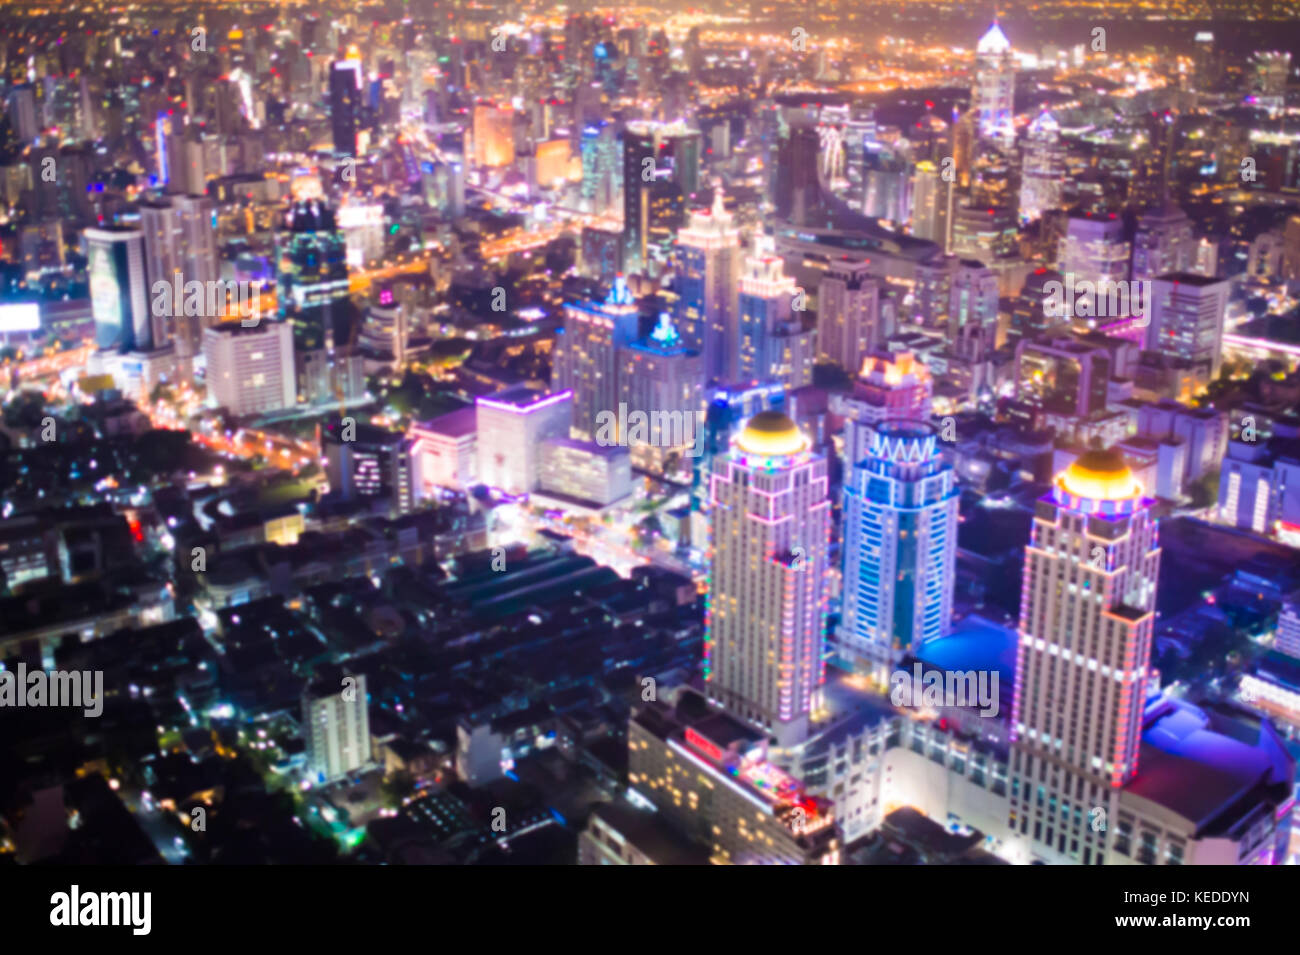 Blurred aerial view of Bangkok city at night. One of the most illuminated metropolis of Asia. - Stock Image